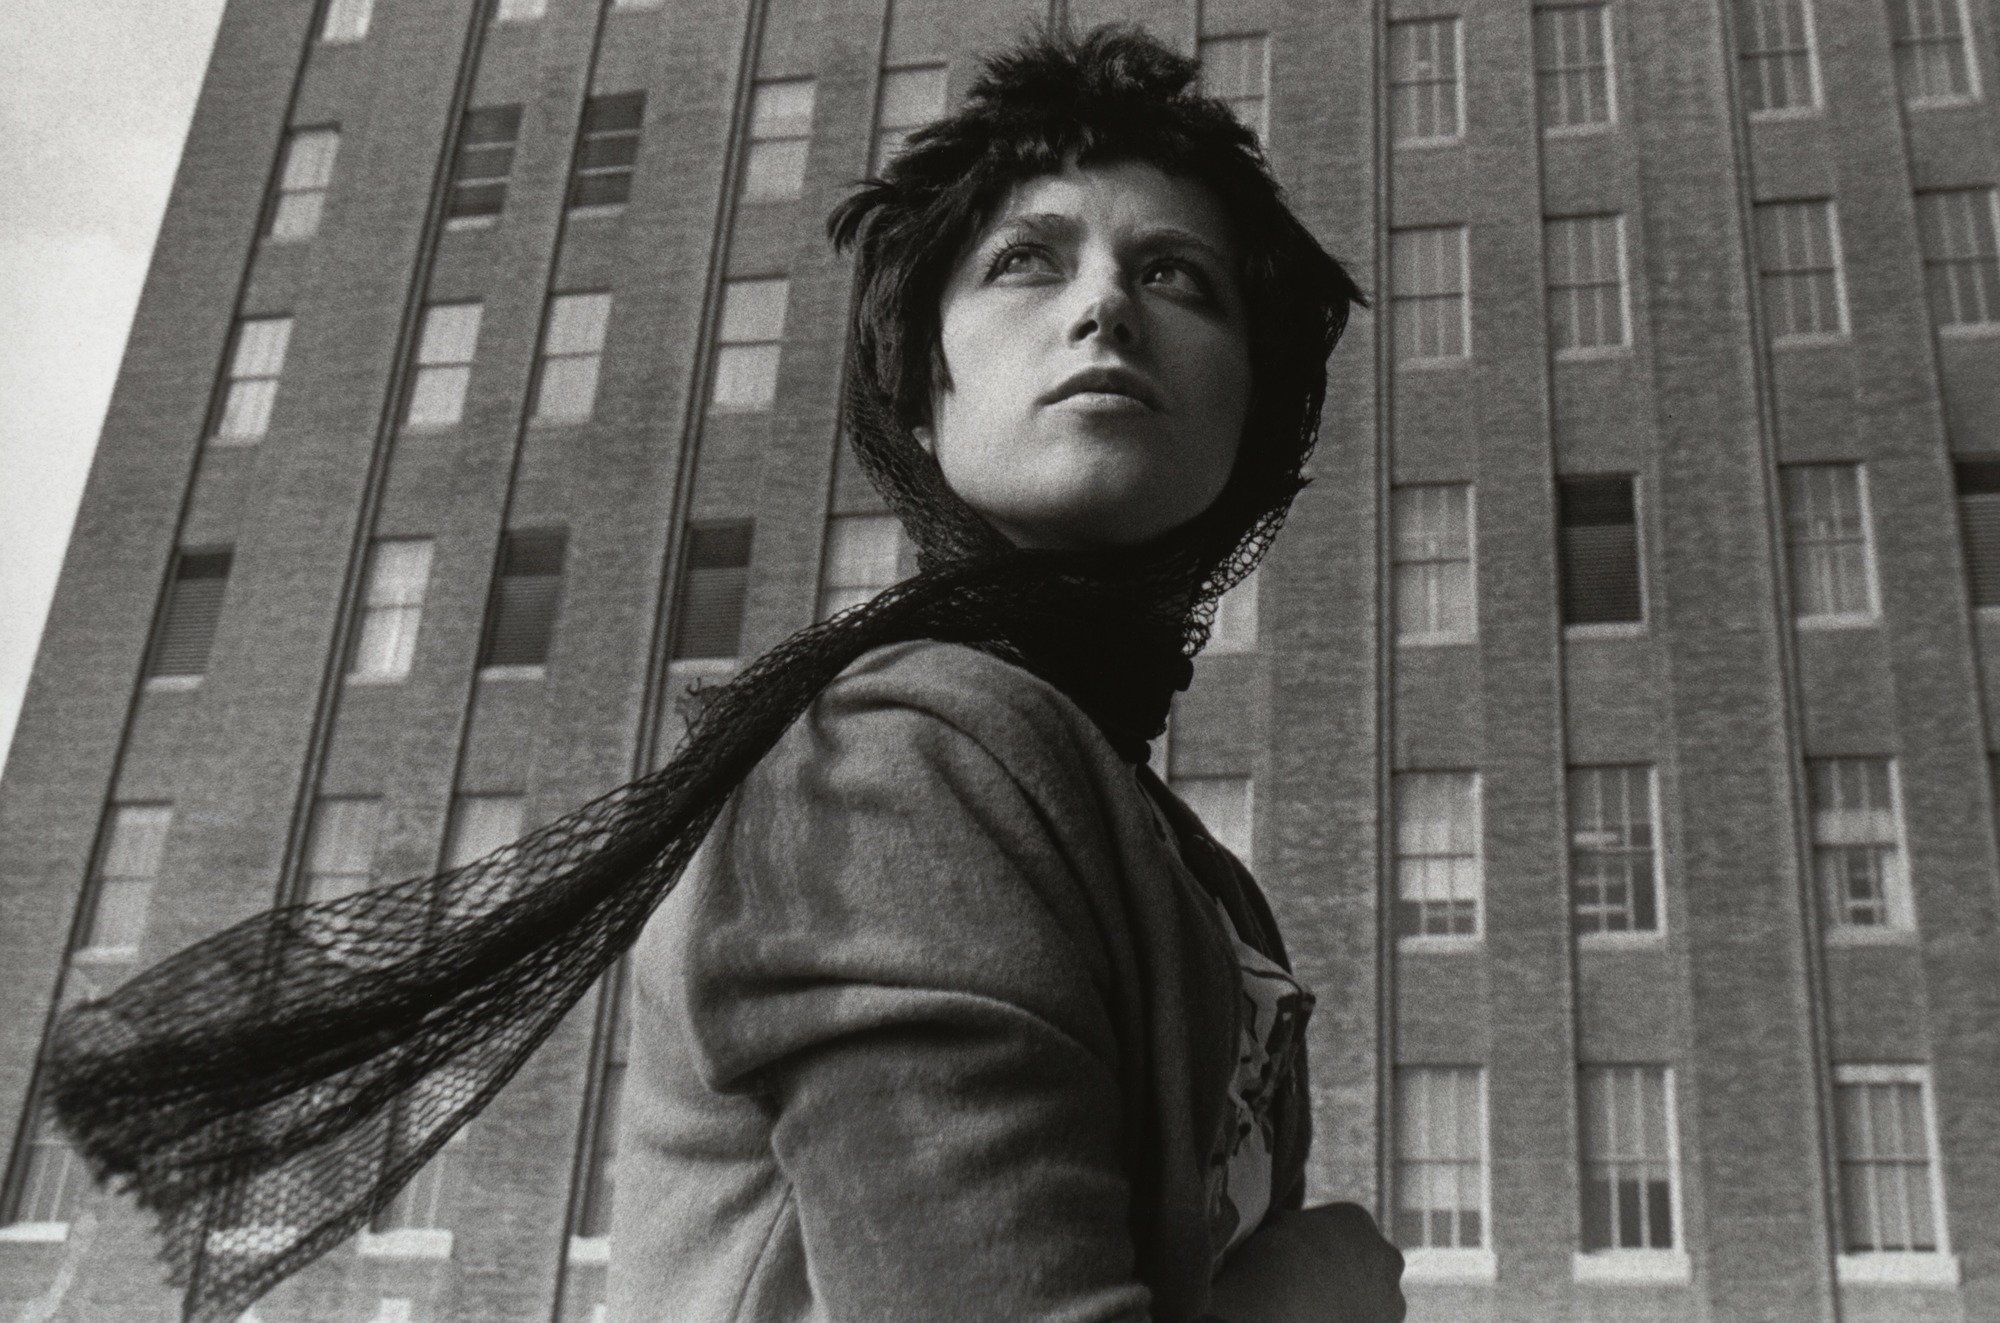 Cindy Sherman Untitled Film Still 58.1980 https://www.moma.org/collection/works/57196